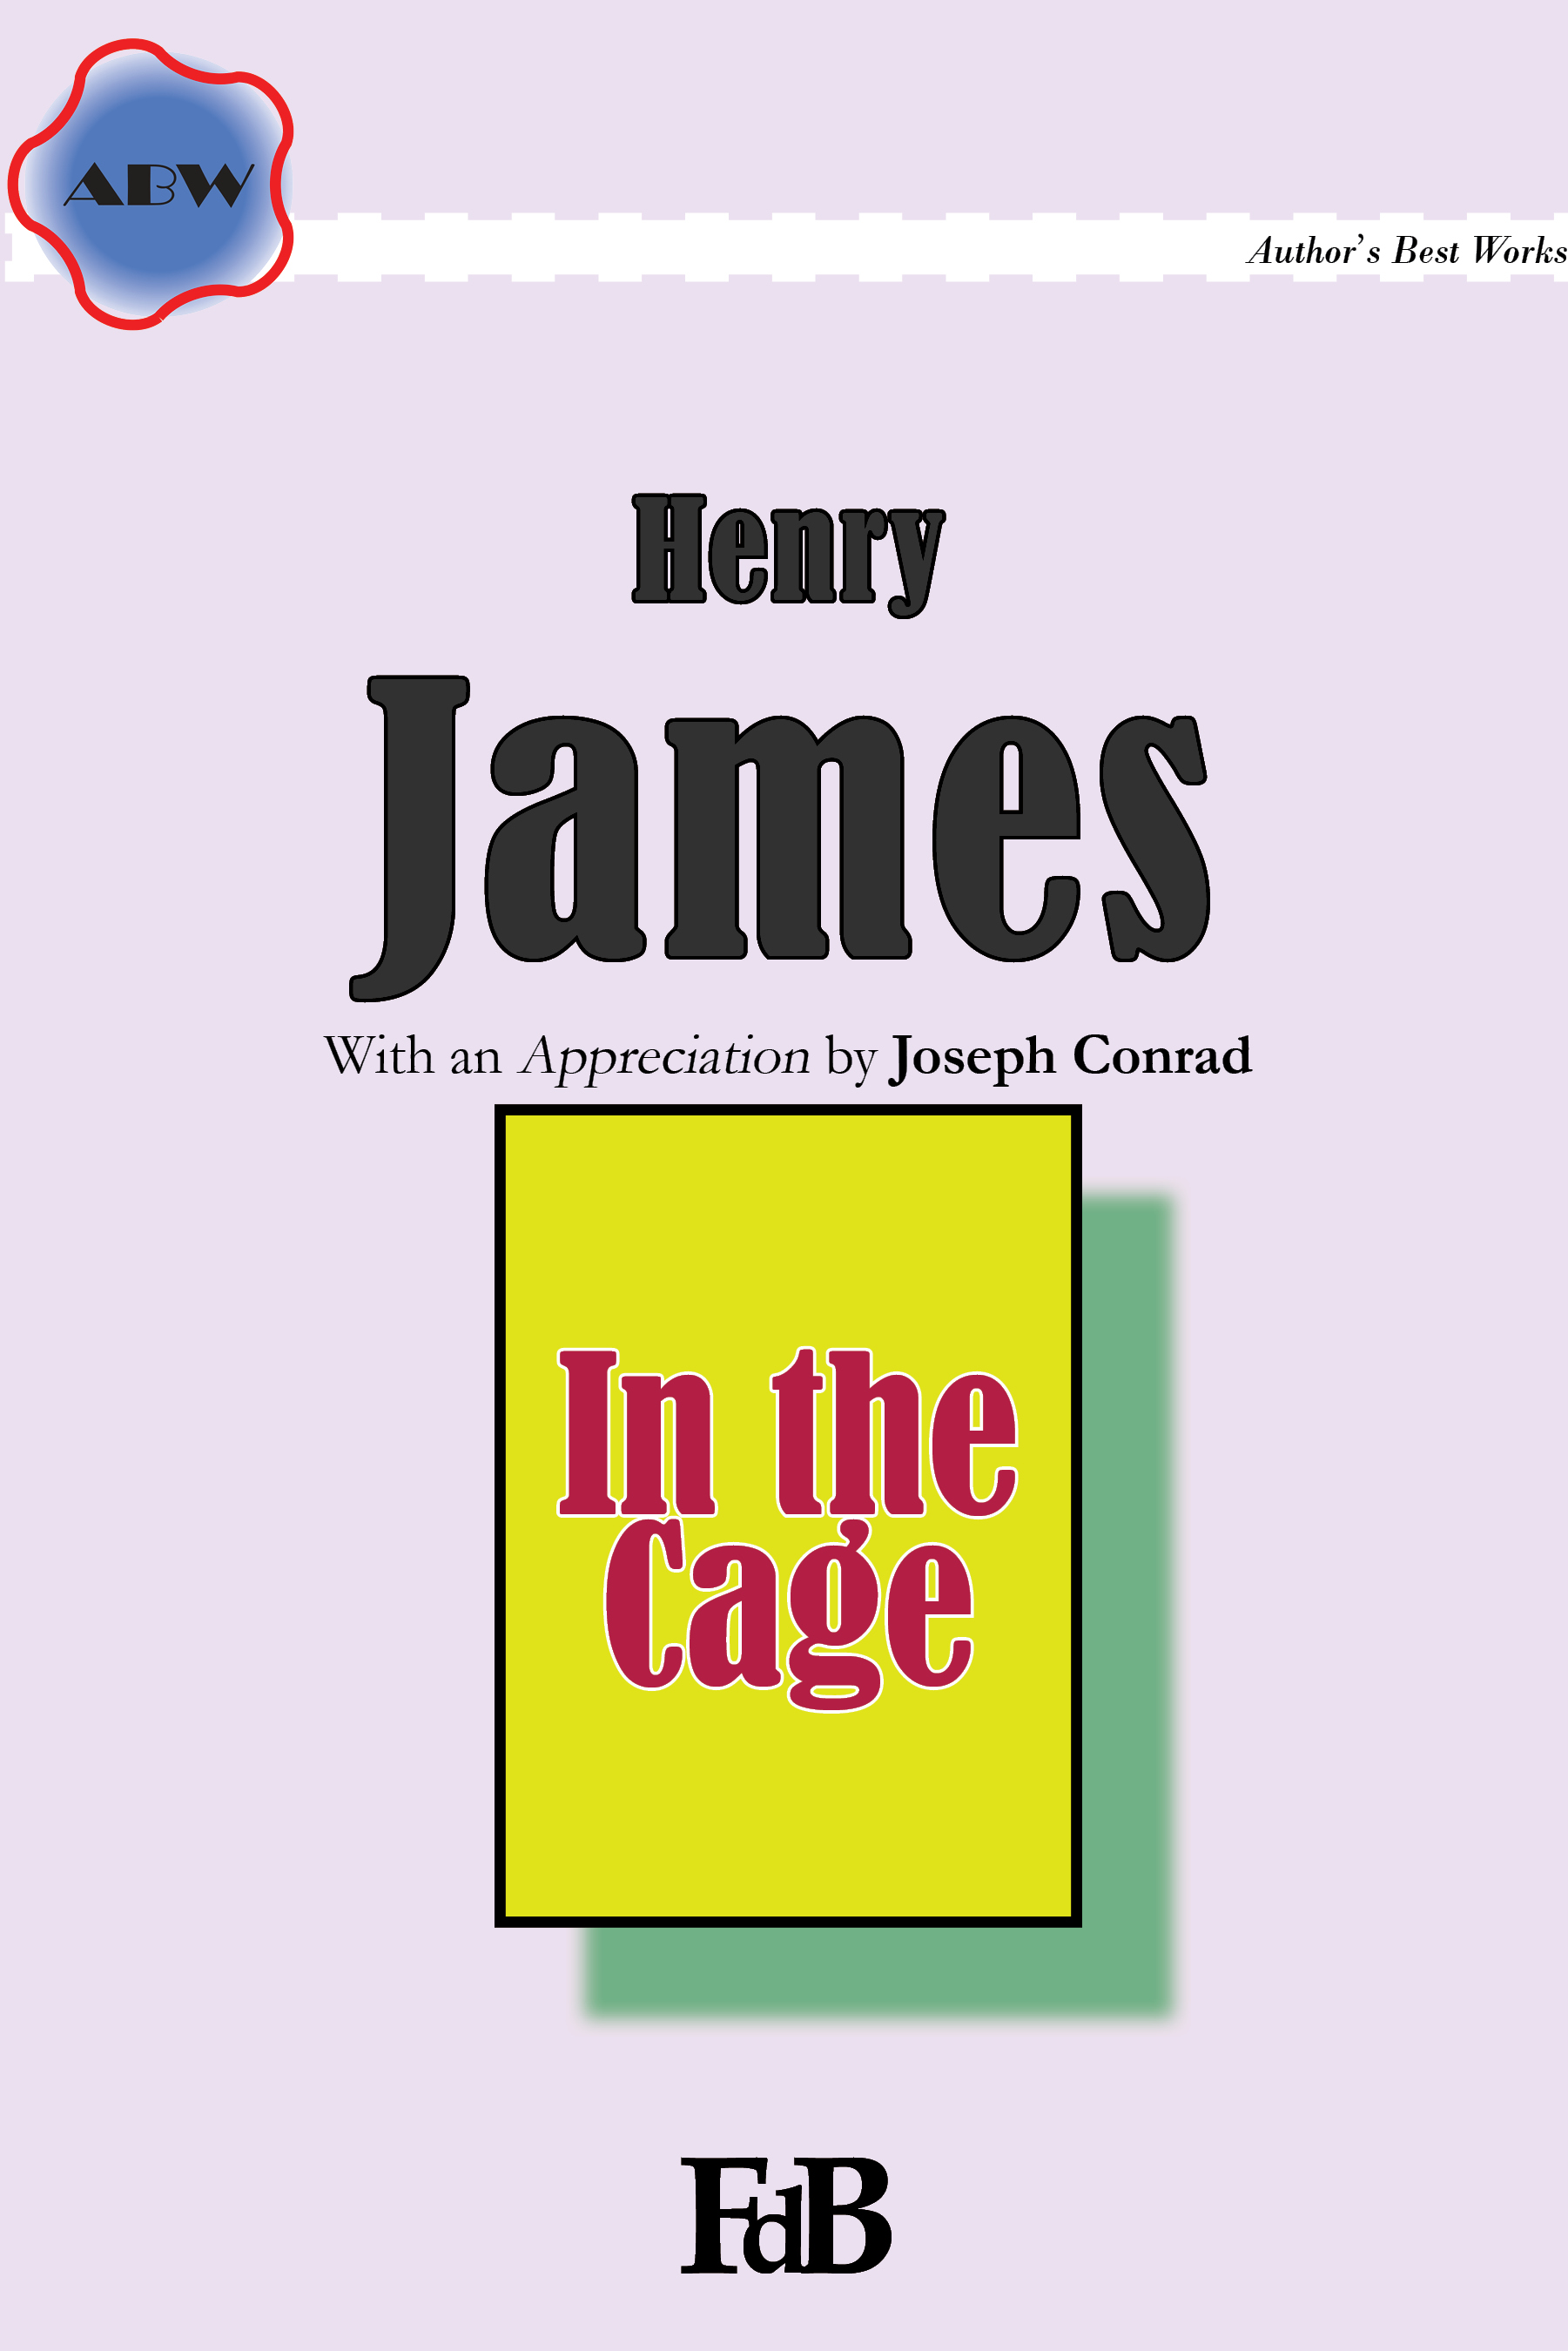 """Henry James, """"In the Cage"""". With an Appreciation by Joseph Conrad."""